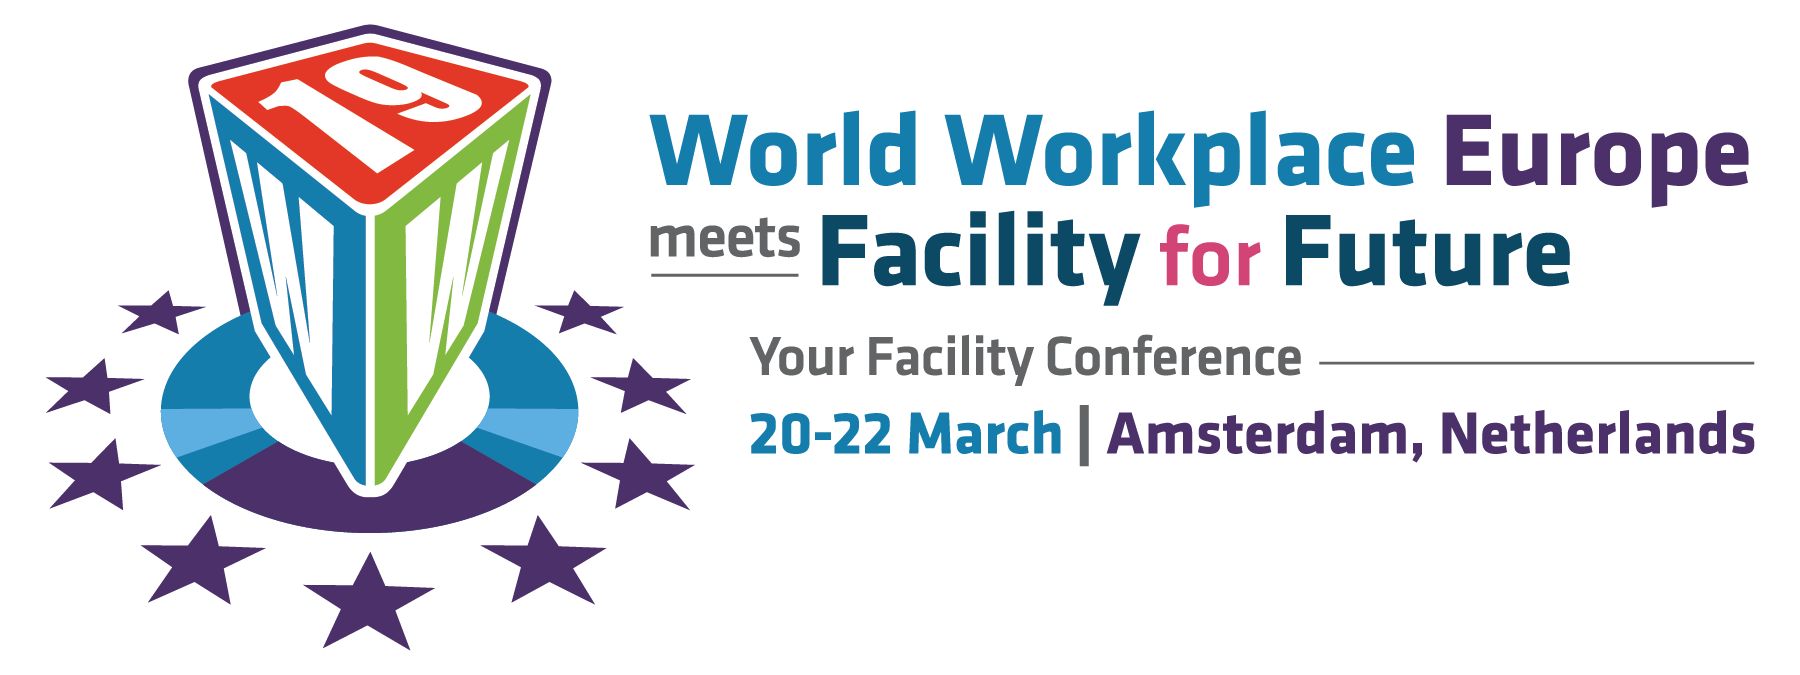 World Workplace Europe meets Facility for Future.